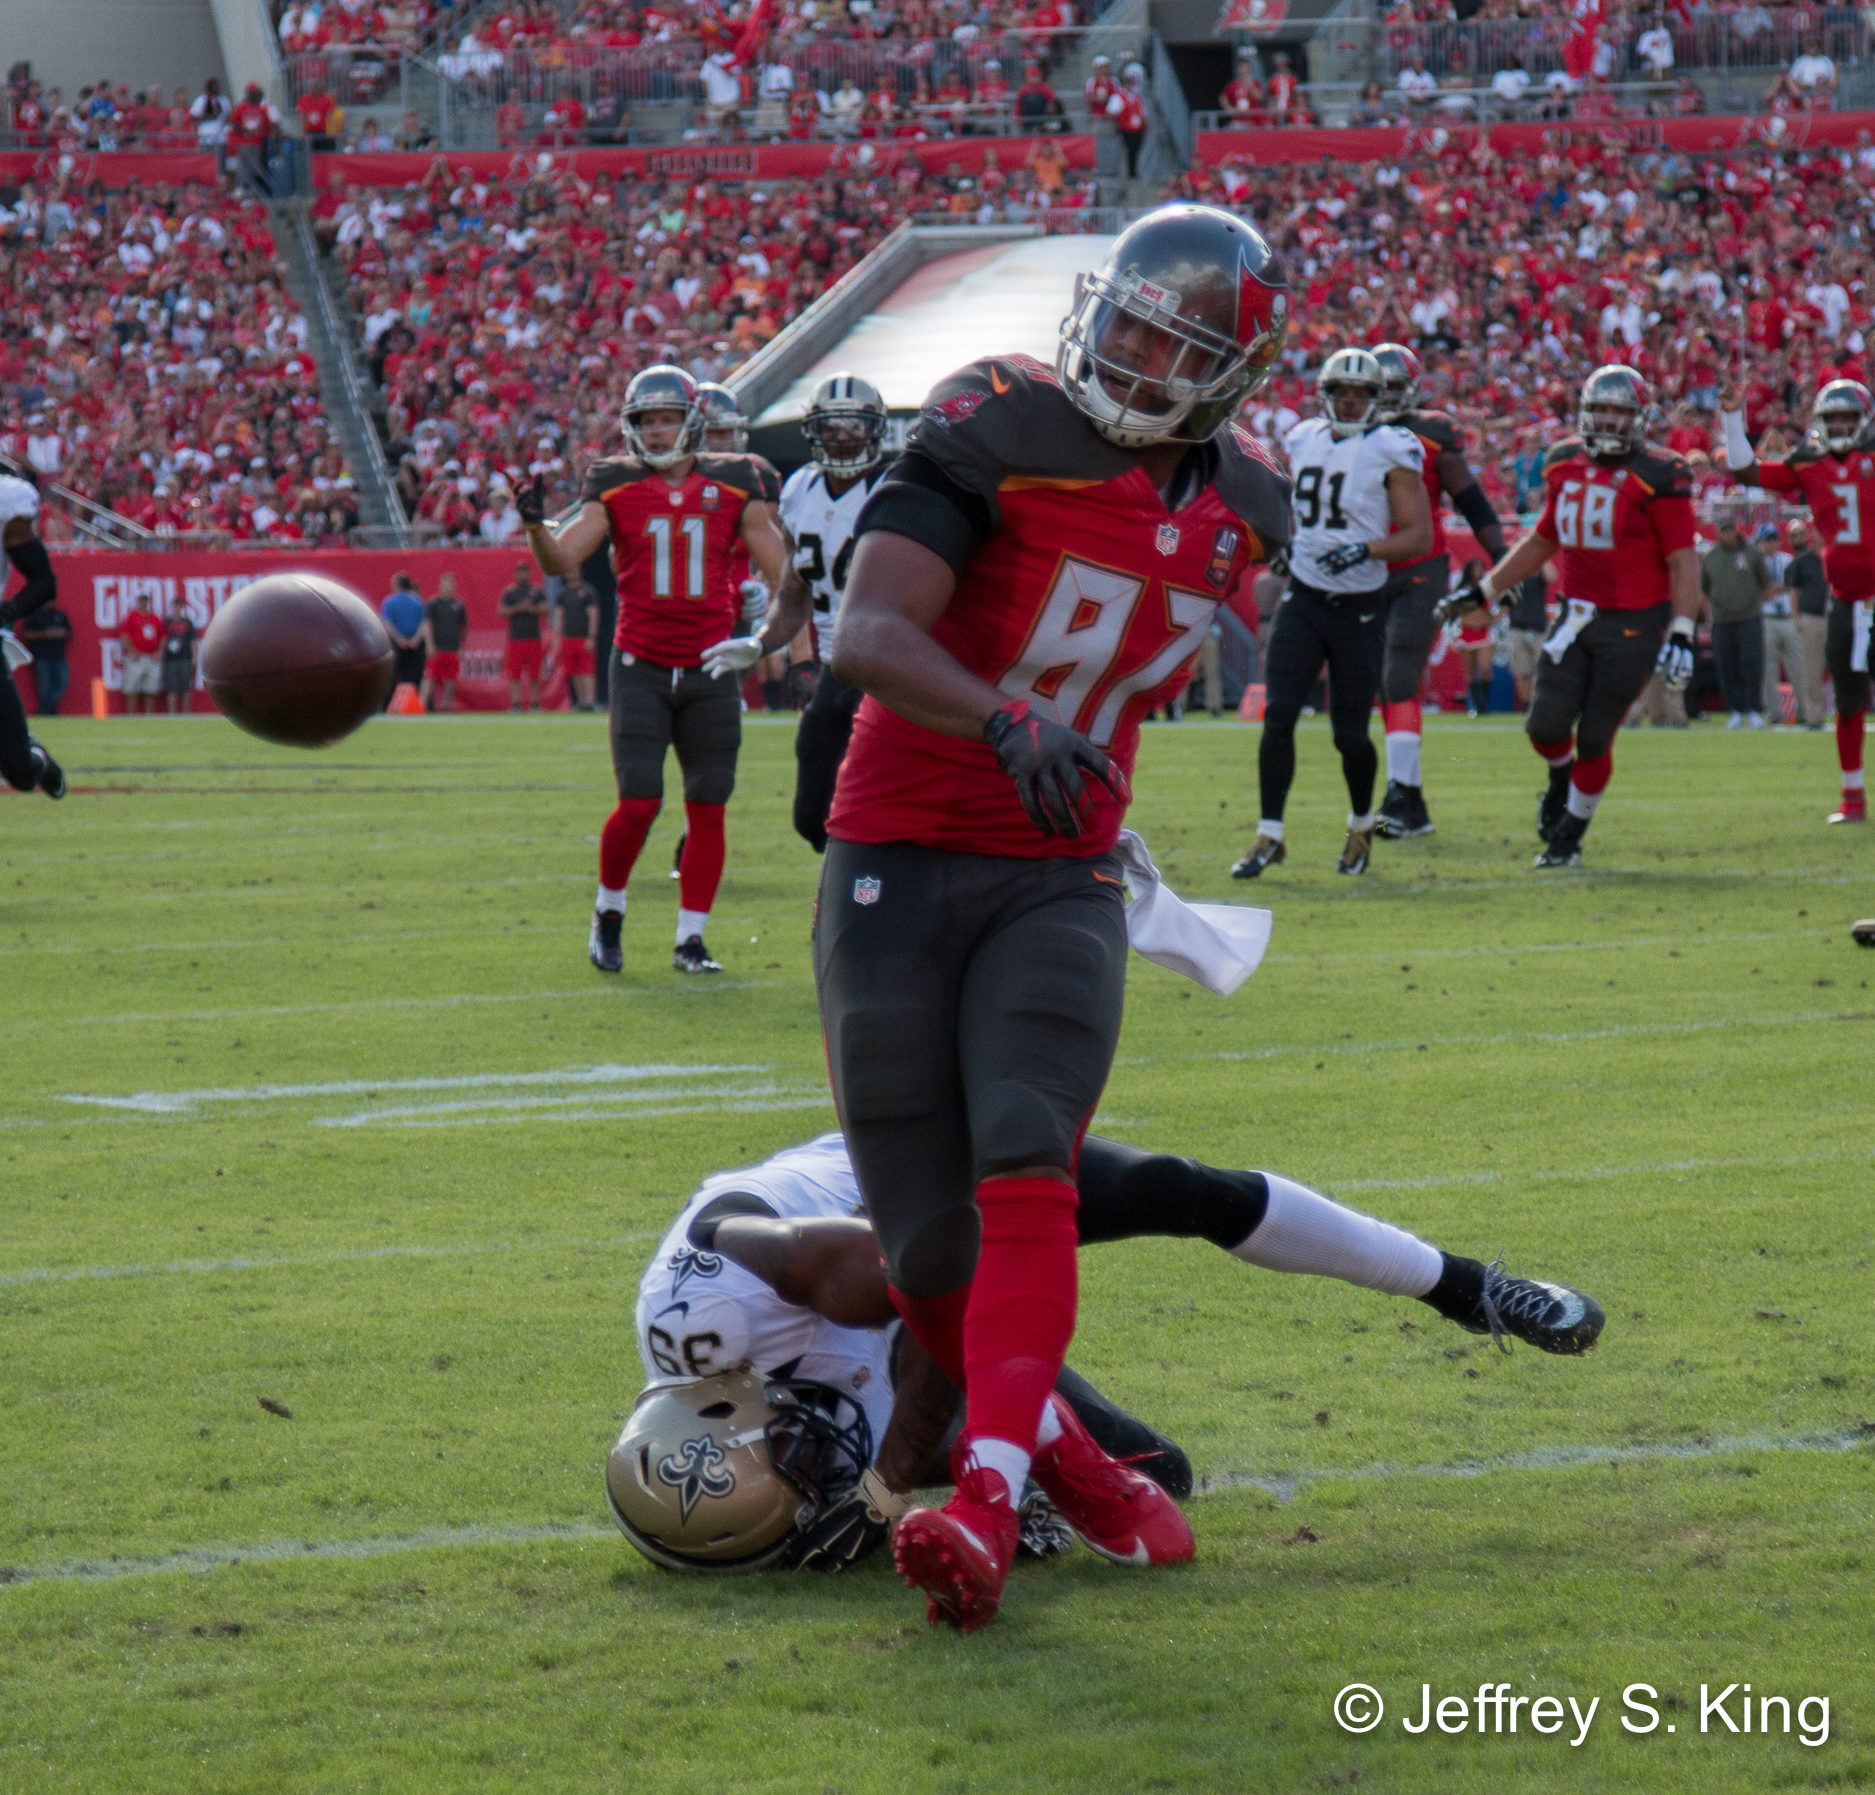 Seferian-Jenkins was more of a detriment than an asset in practice.